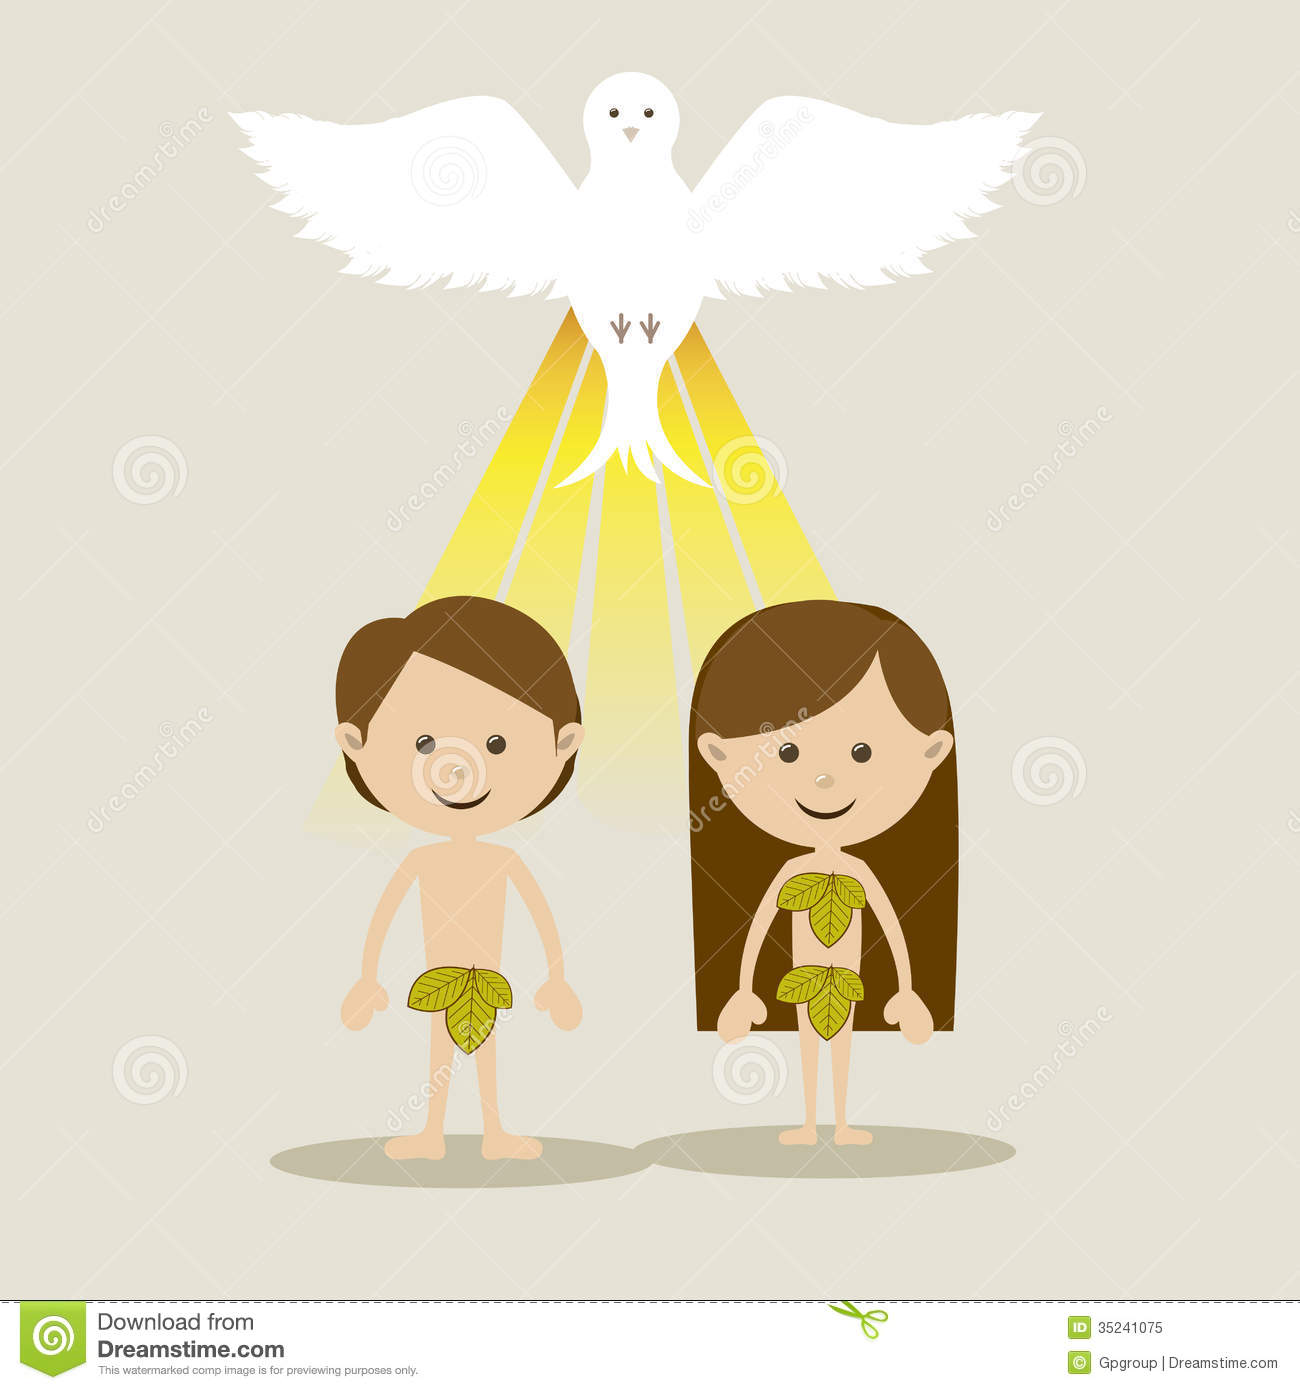 human nature in the story of adam and eve The garden of eden story: interpretations of adam and eve's first parents with a curious nature and a drive to excel, both eve and adam were anxious.